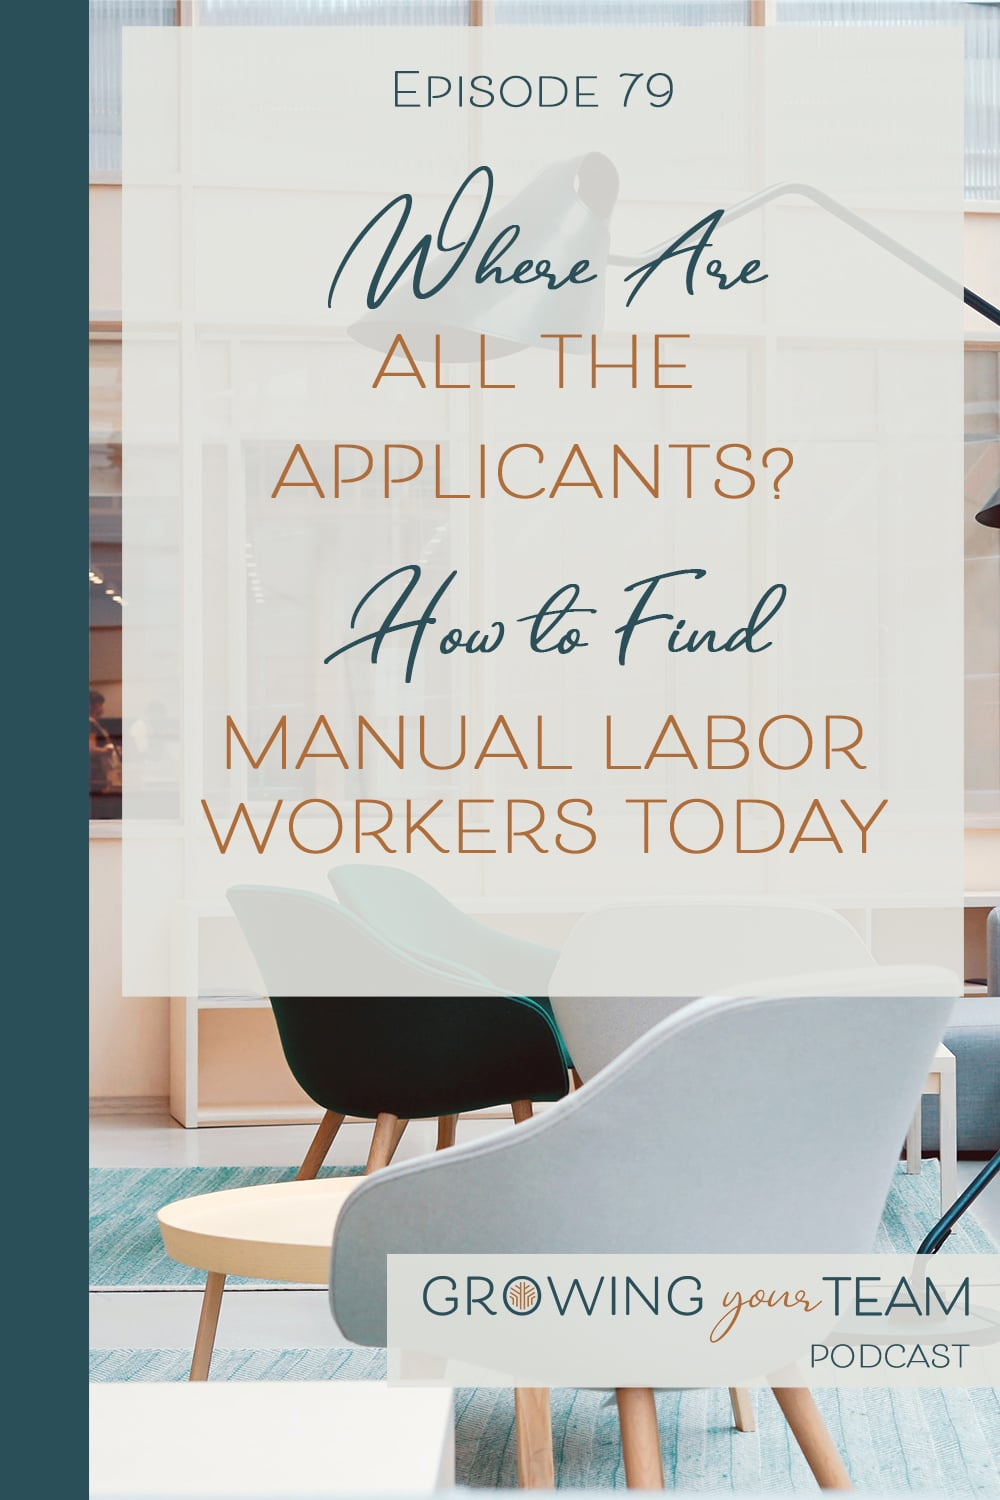 Find Manual Labor Workers, Growing You Team Podcast, Jamie Van Cuyk, Small Business